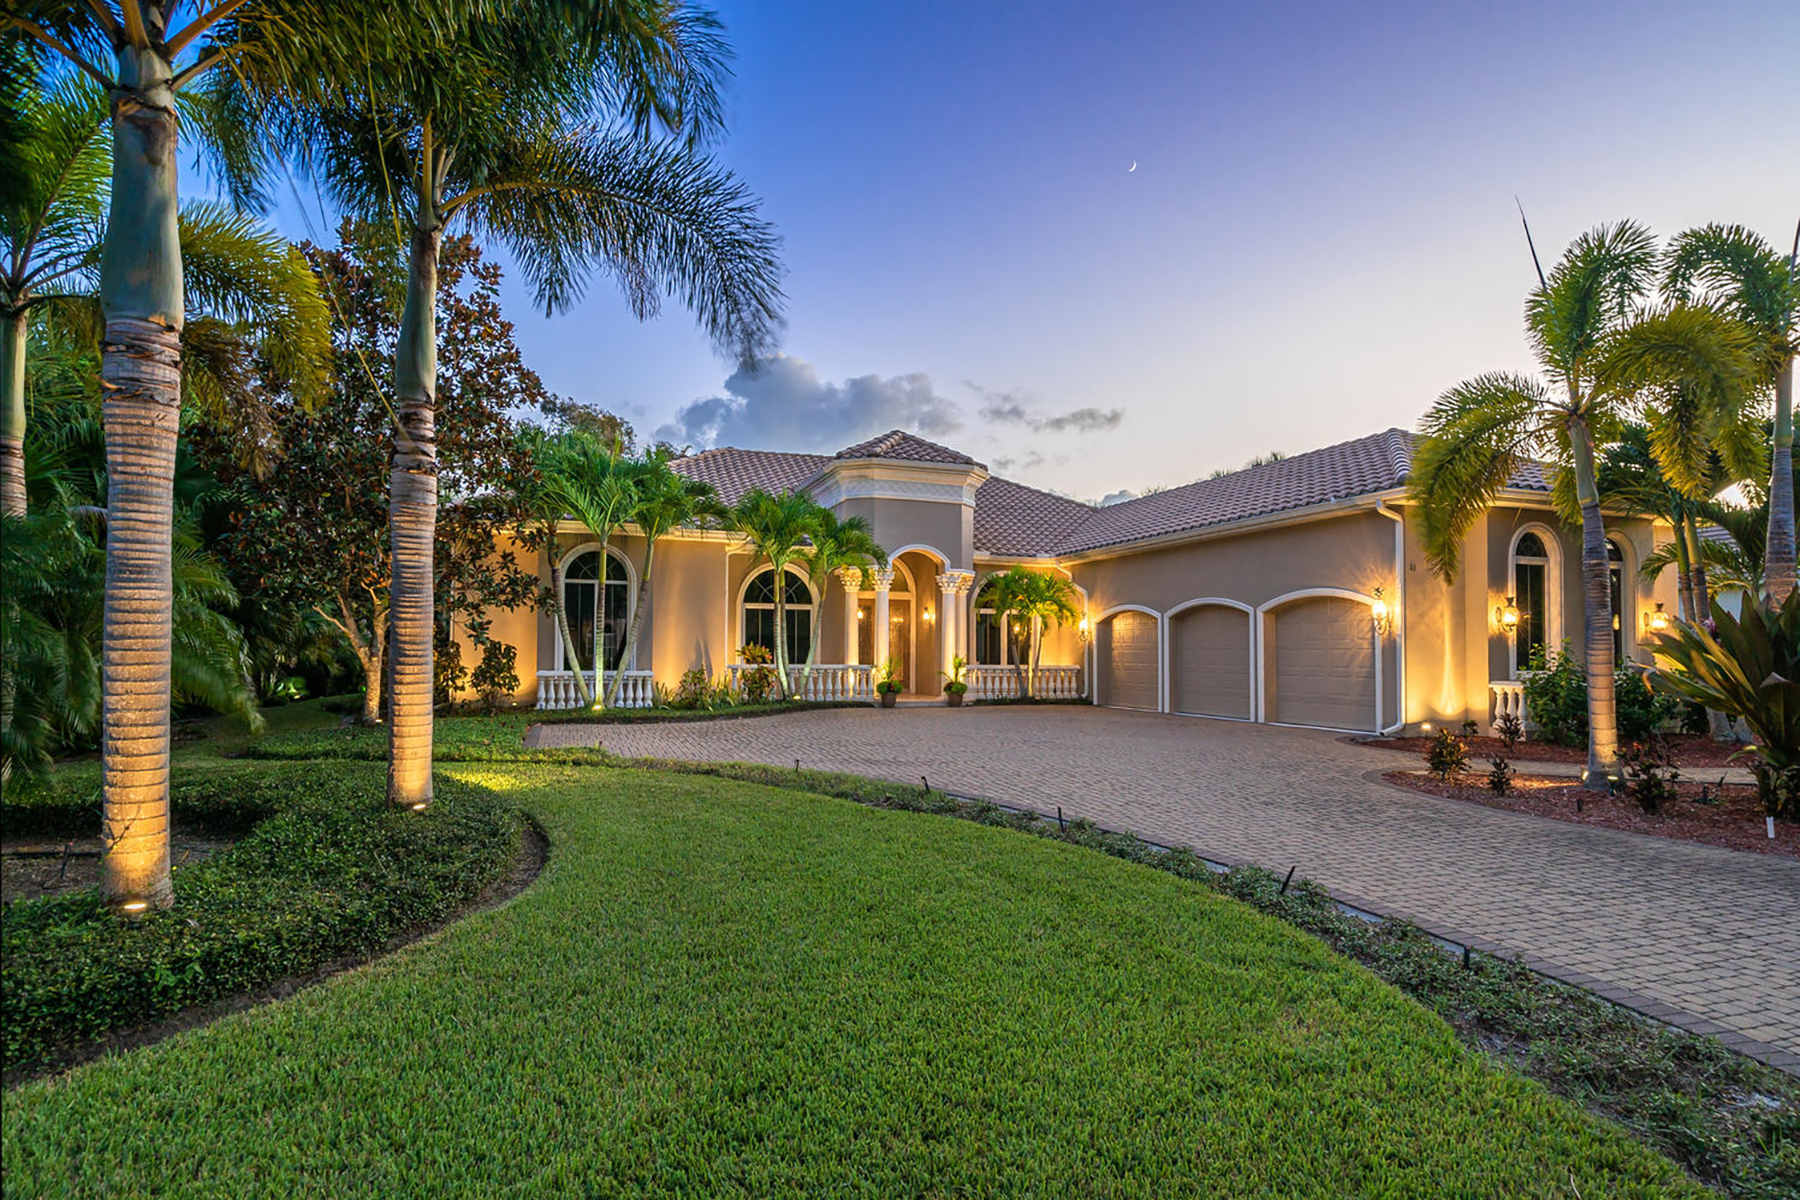 Single Family Homes for Sale at 31 Boca Royale Blvd, Englewood, Florida 34223 United States